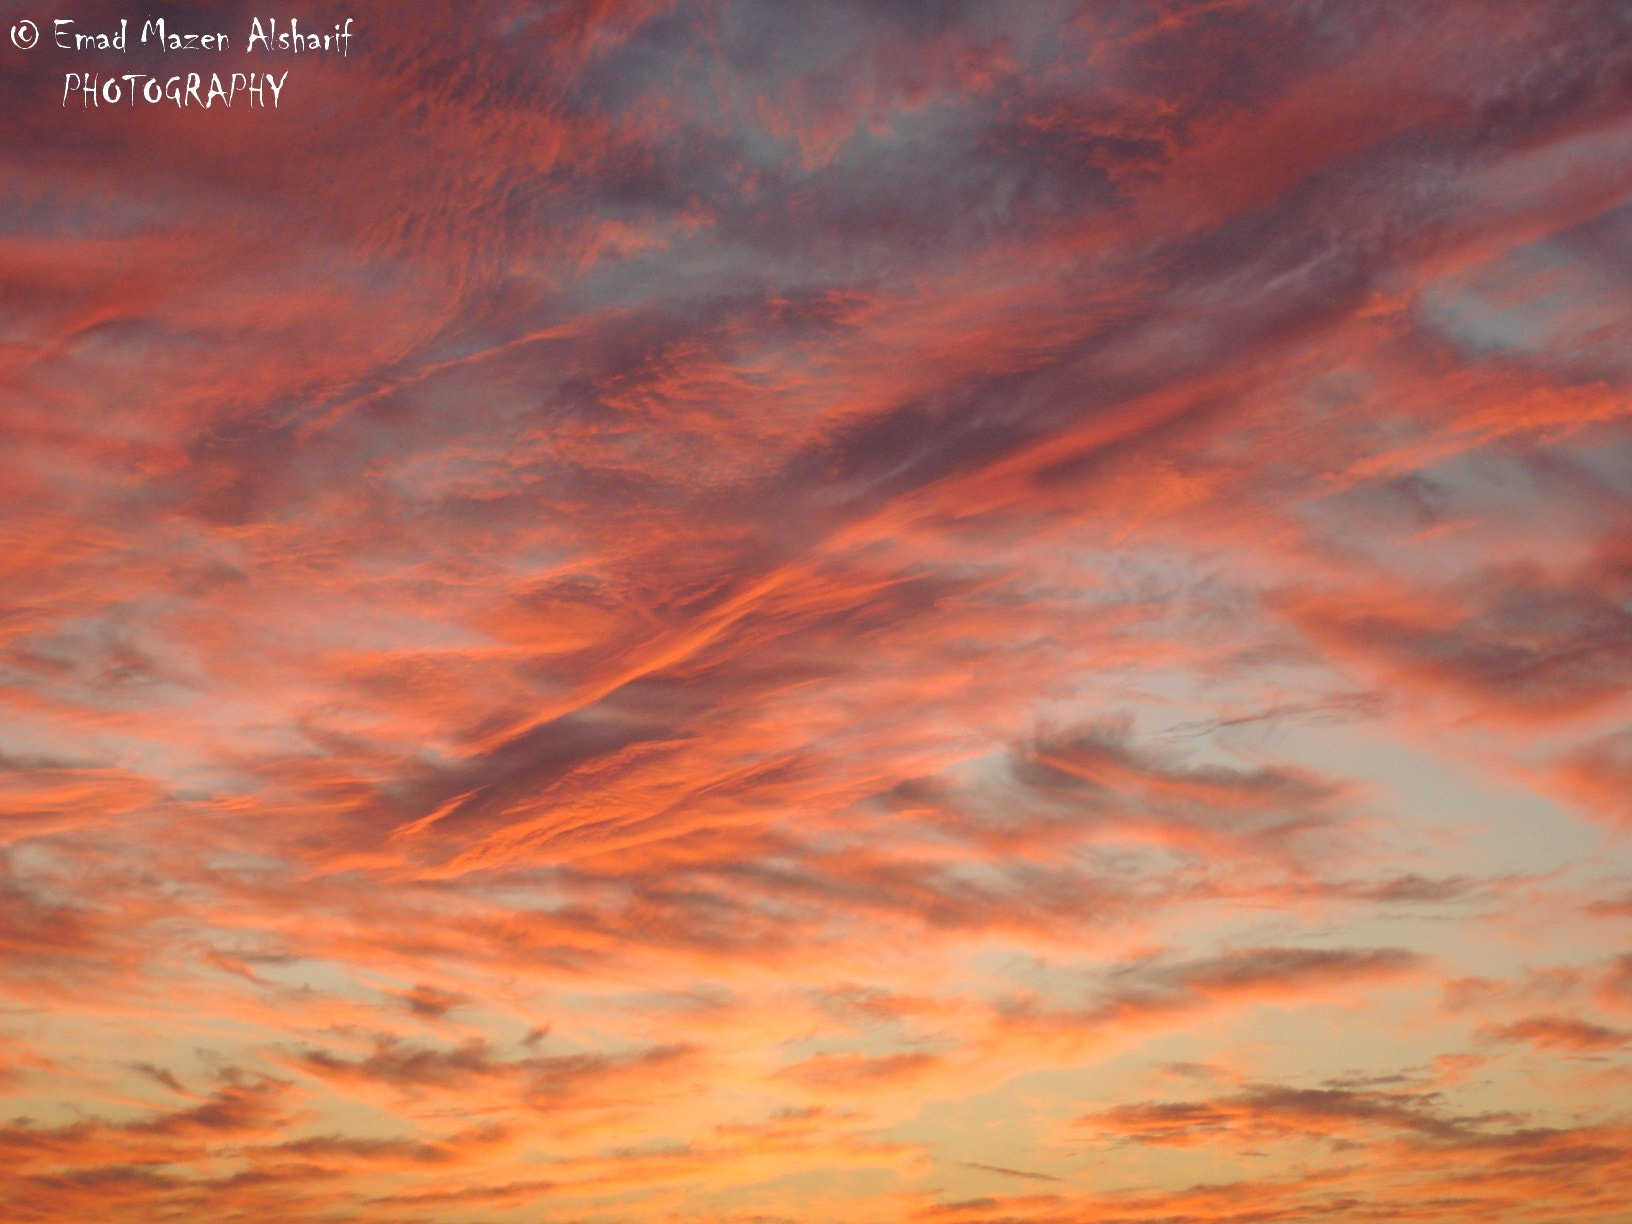 Photograph Sky Beauty by Emad Alsharif on 500px